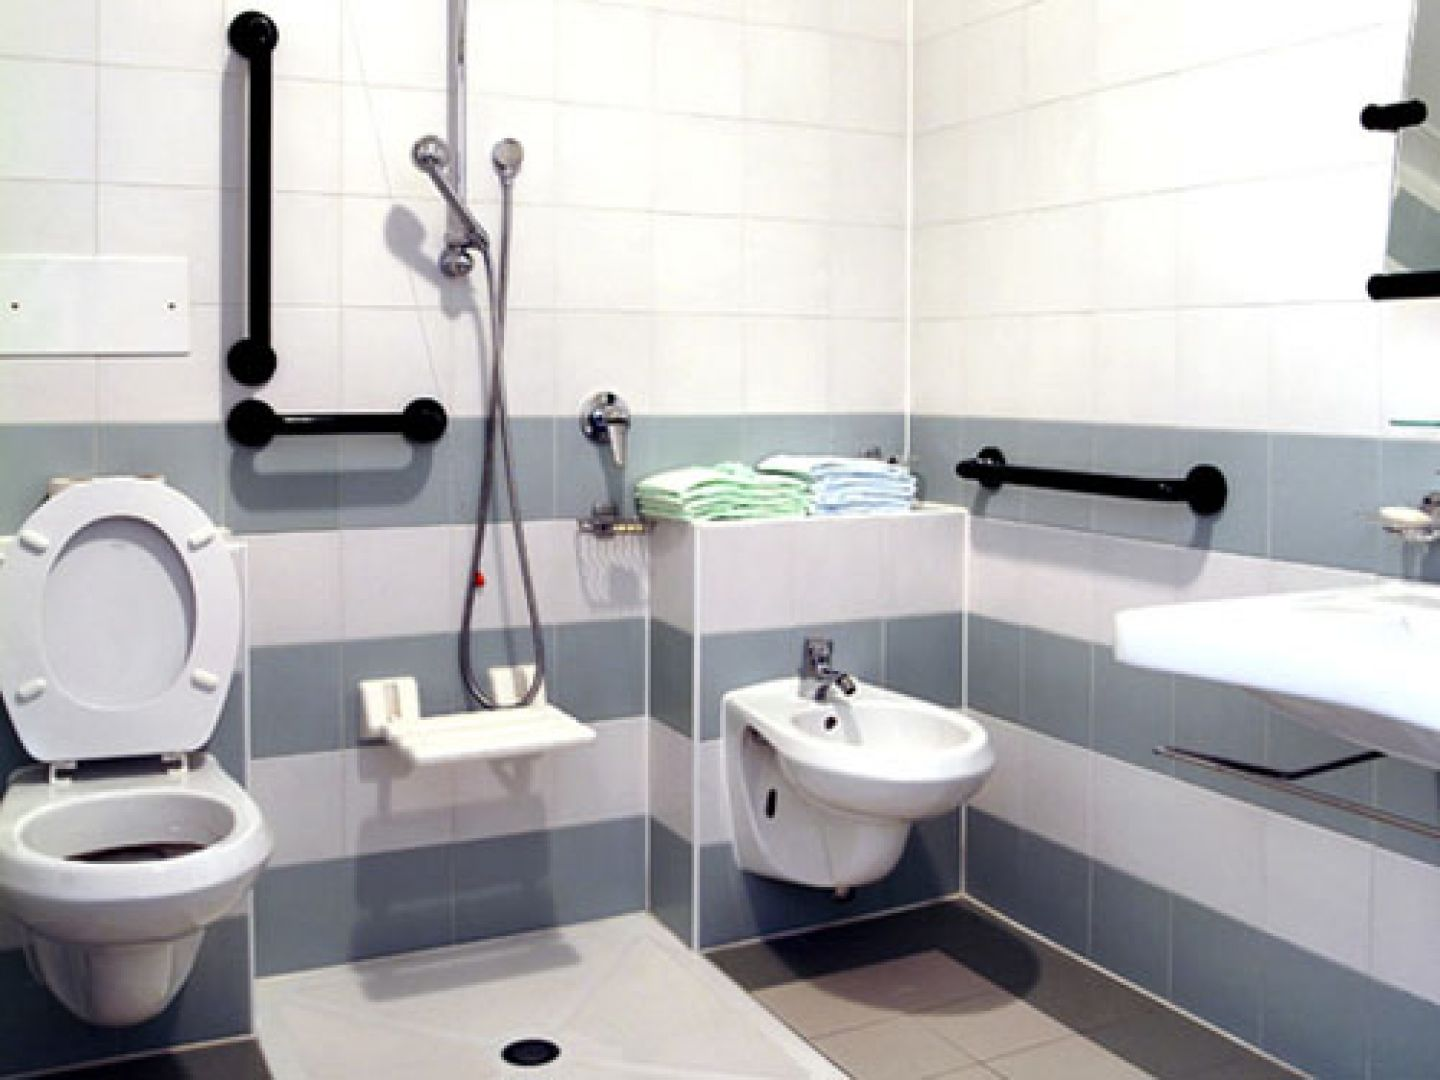 handicap bathroom design ideas accessiblebathroomtips visit us for more info about disabled bathroom - Bathroom Design Ideas Disabled